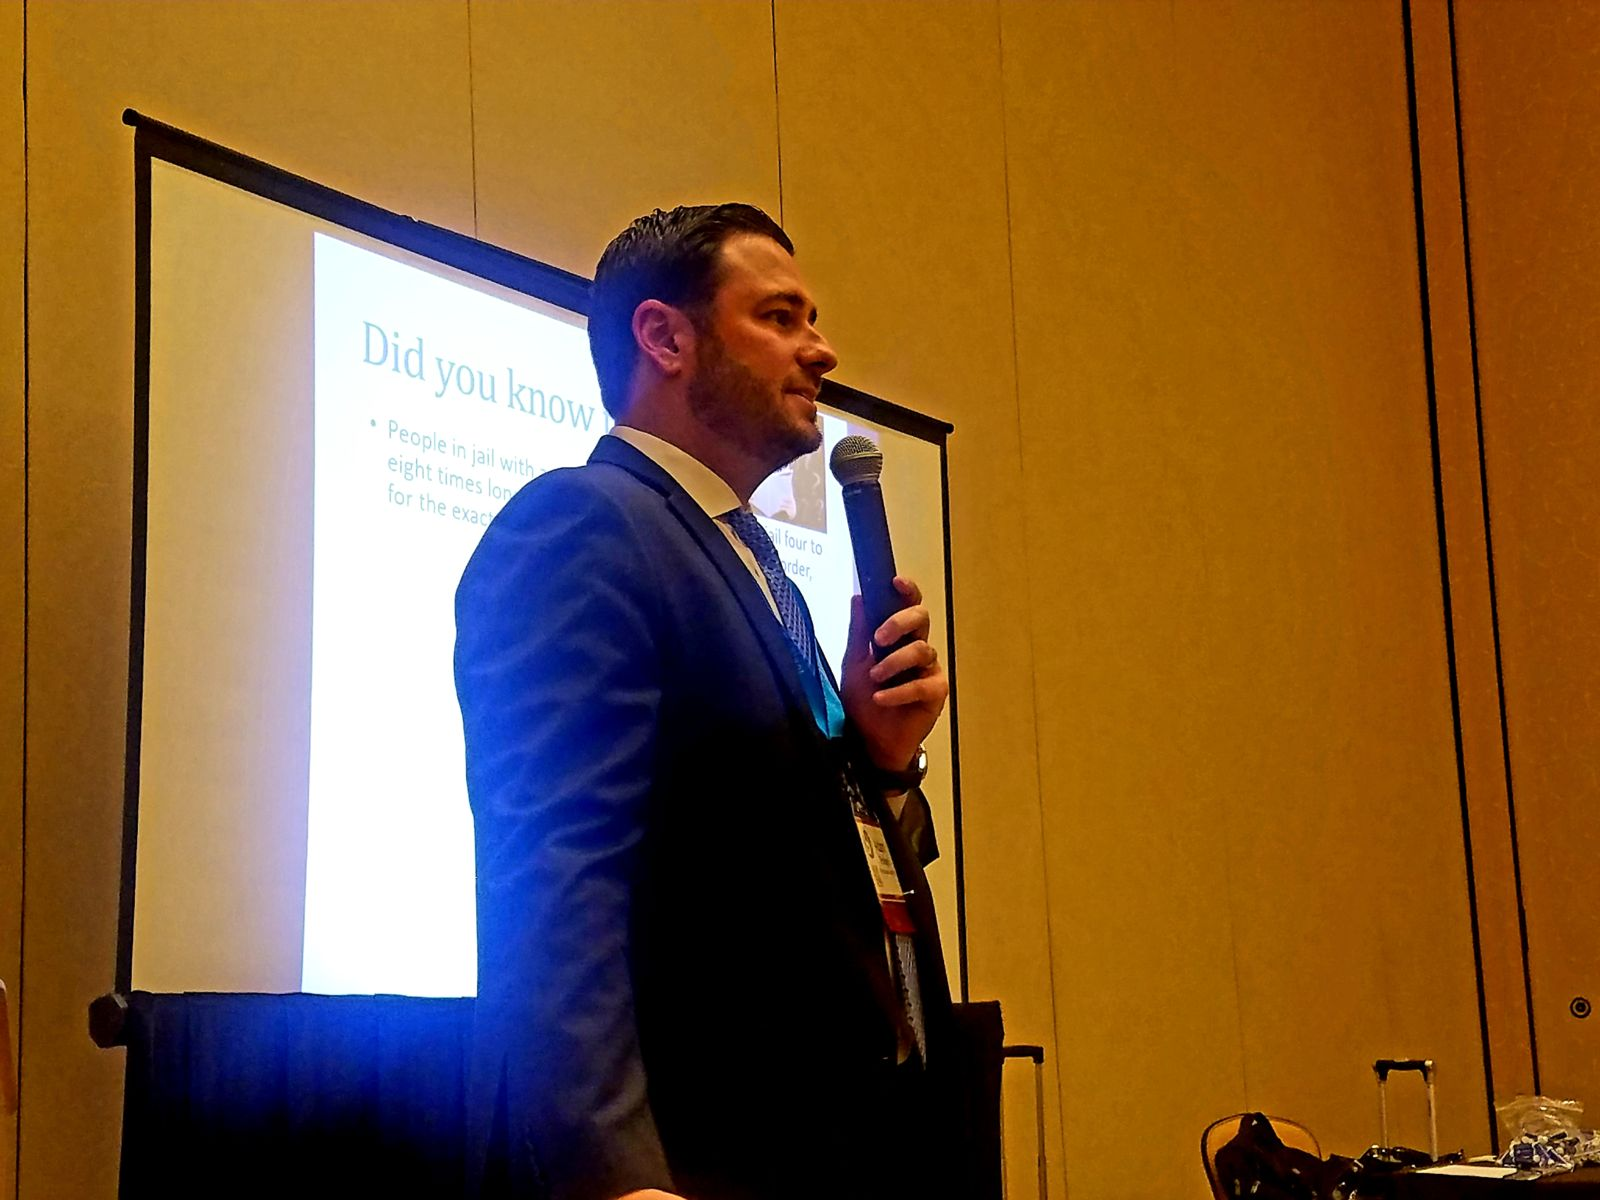 Criminal and DUI defense attorney Adam Rossen delivers a speech to therapists about the need for attorneys and therapists to have a unified approach. This is specifically important for mental health patients who have legal issues, or legal services clients who may also have mental health struggles.